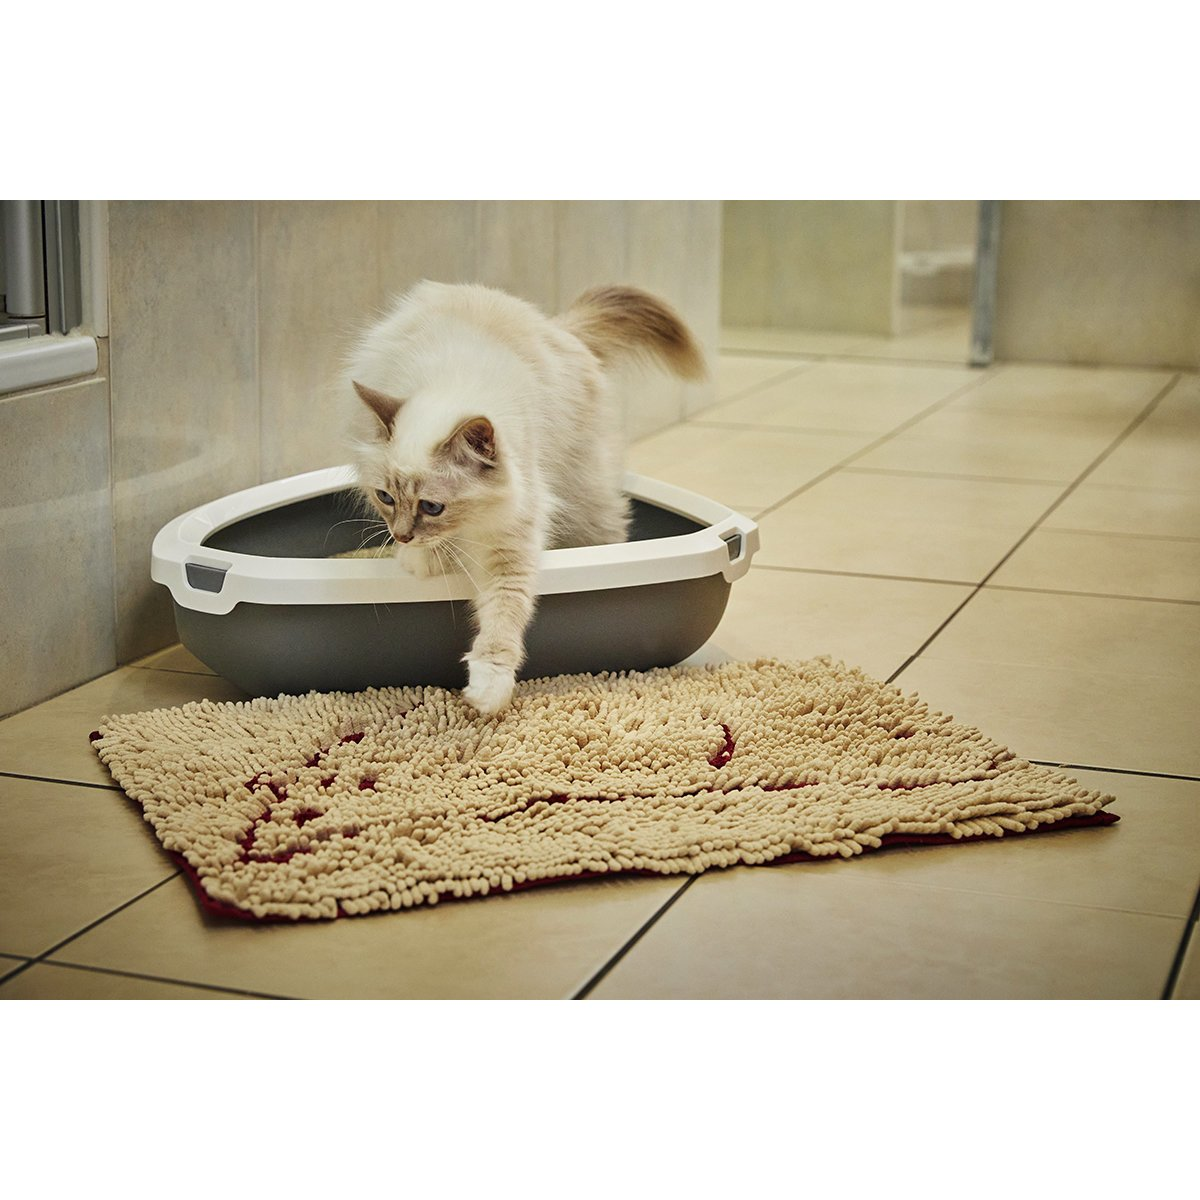 Dog Gone Smart Cat Litter Mat Katzenmatte, Bild 2